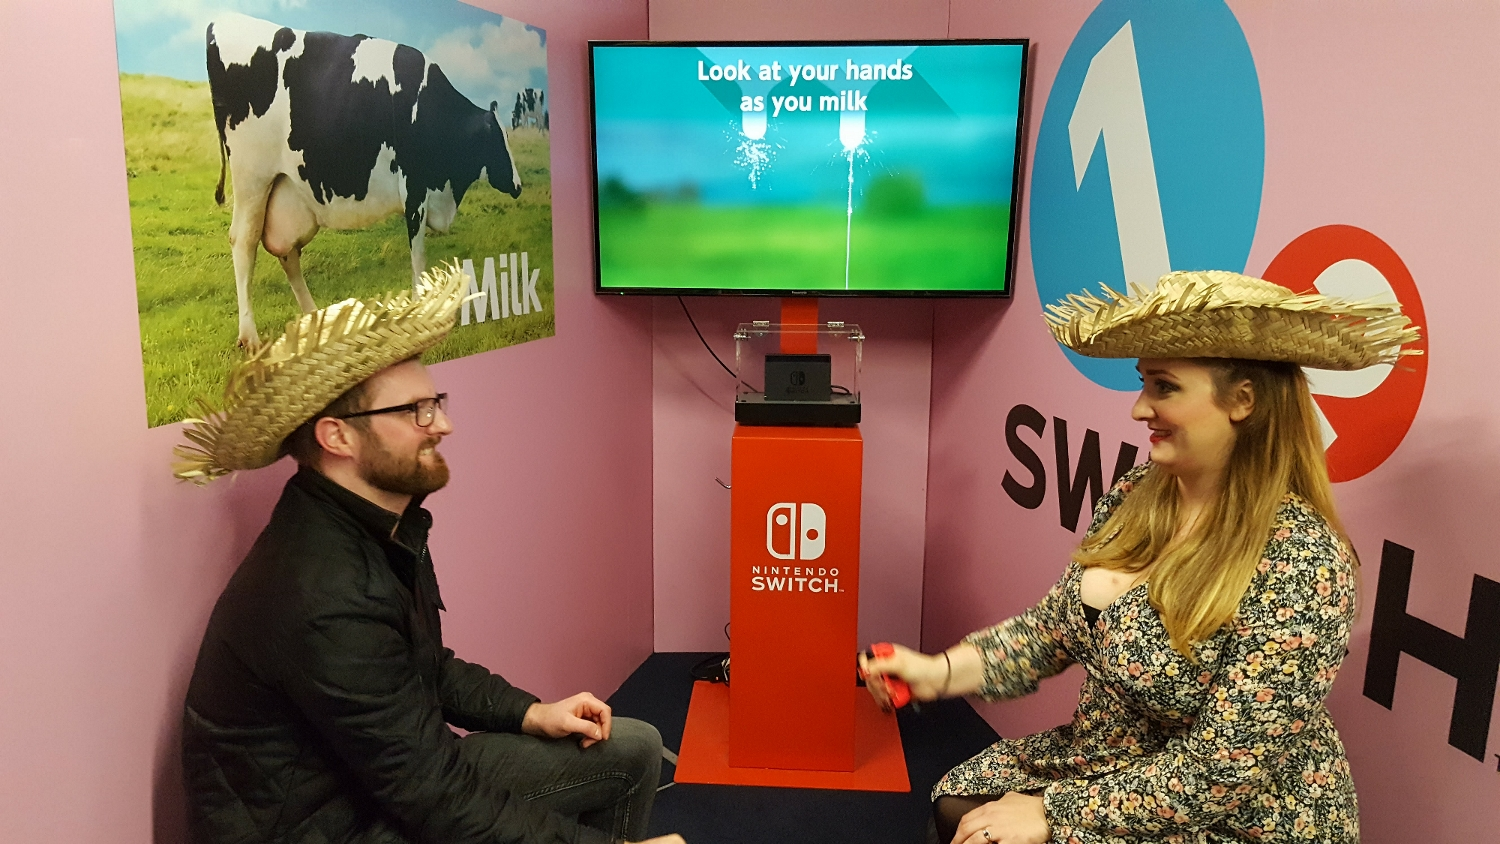 Milking the Switch event for all it's worth